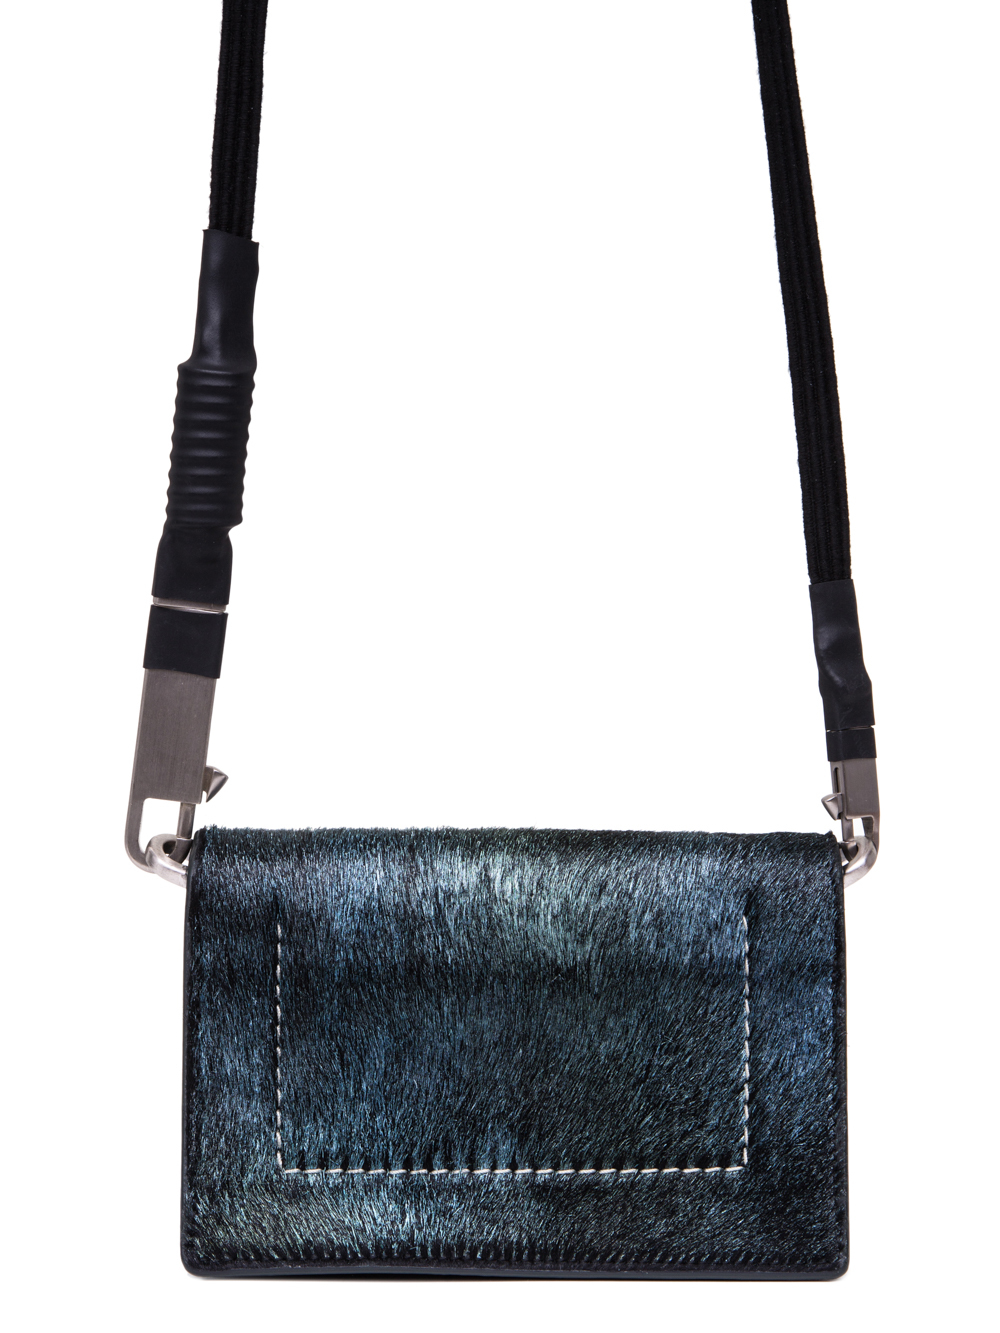 RICK OWENS SS19 BABEL LUNCH BAG IN IRIDESCENT BLUE LEATHER